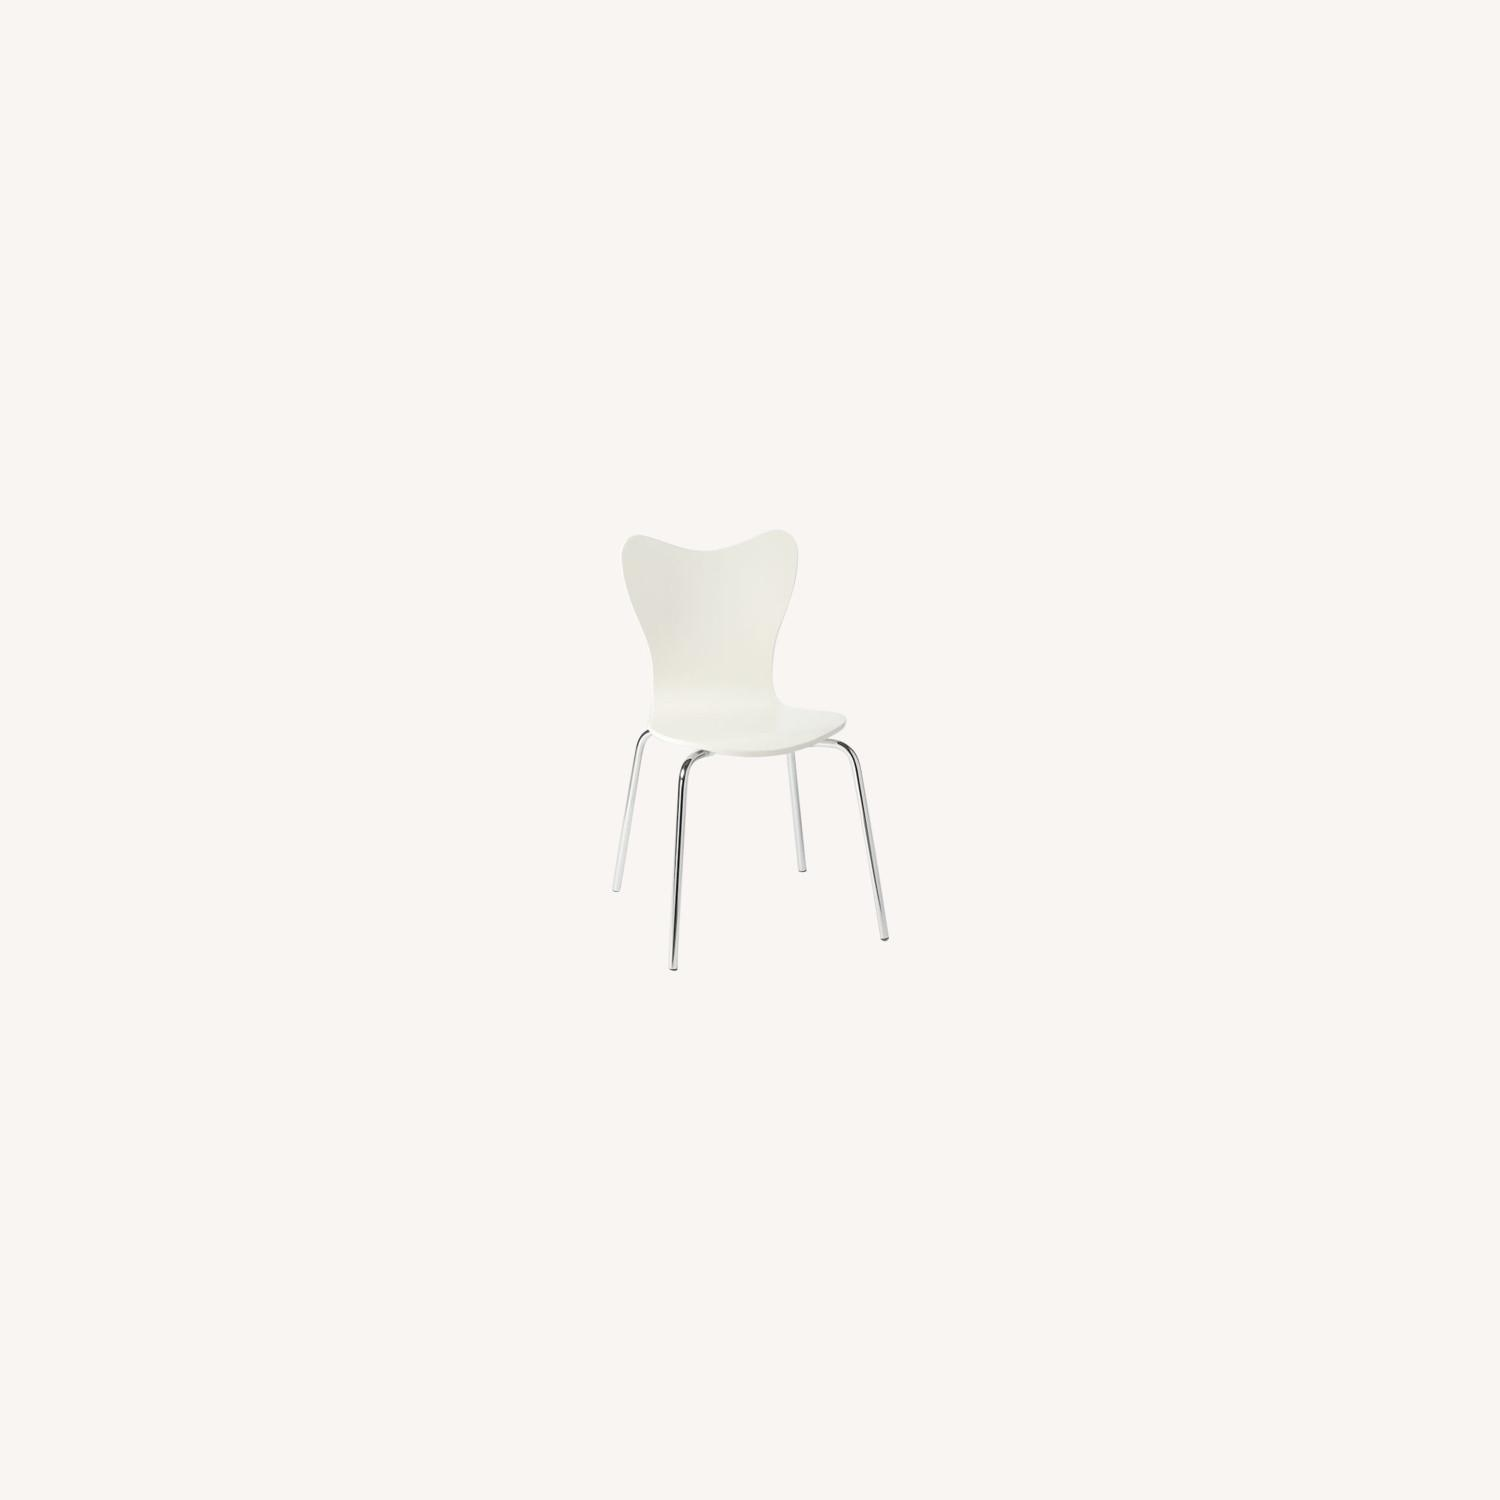 West Elm Scoop Back Dining Chairs - image-0